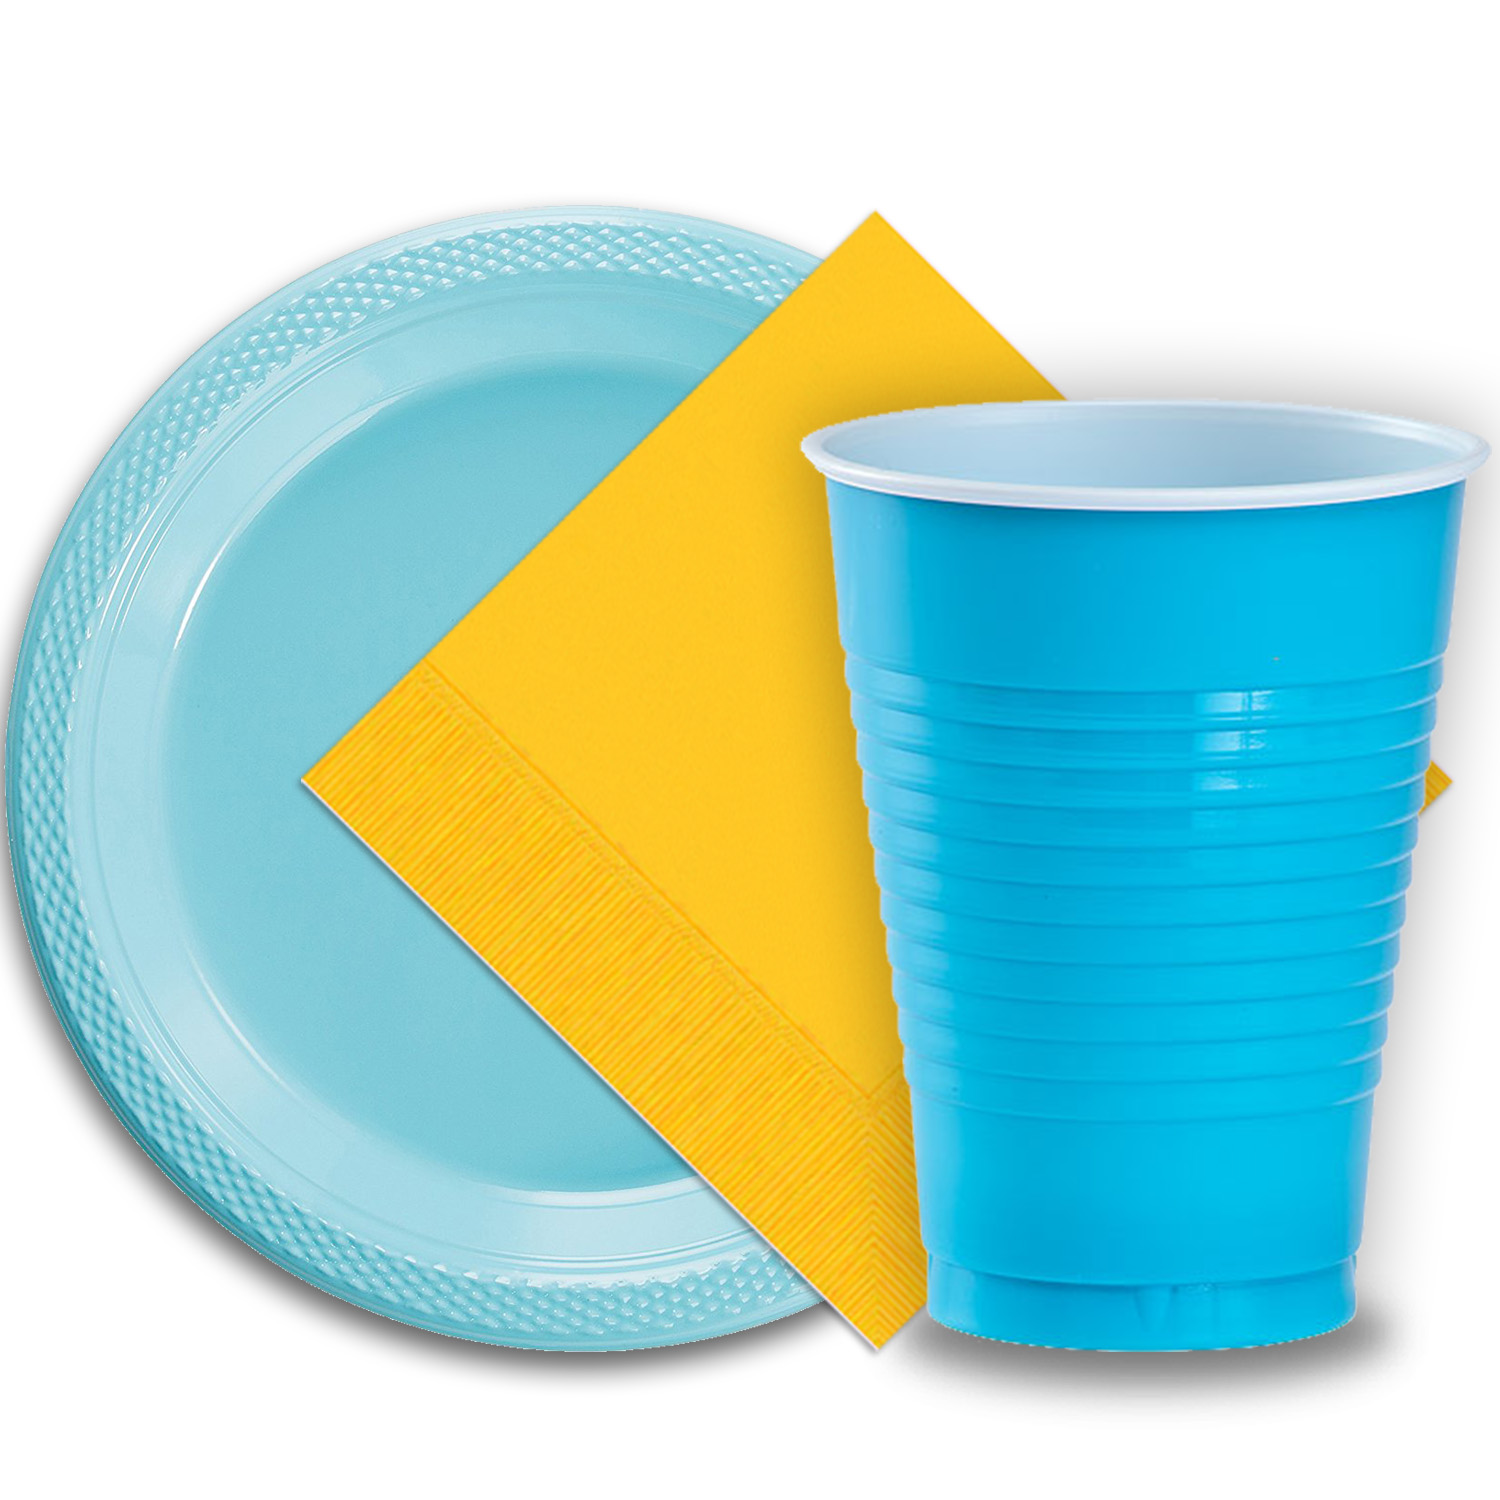 """50 Light Blue Plastic Plates (9""""), 50 Aqua Plastic Cups (12 oz.), and 50 Yellow Paper Napkins, Dazzelling Colored Disposable Party Supplies Tableware Set for Fifty Guests."""